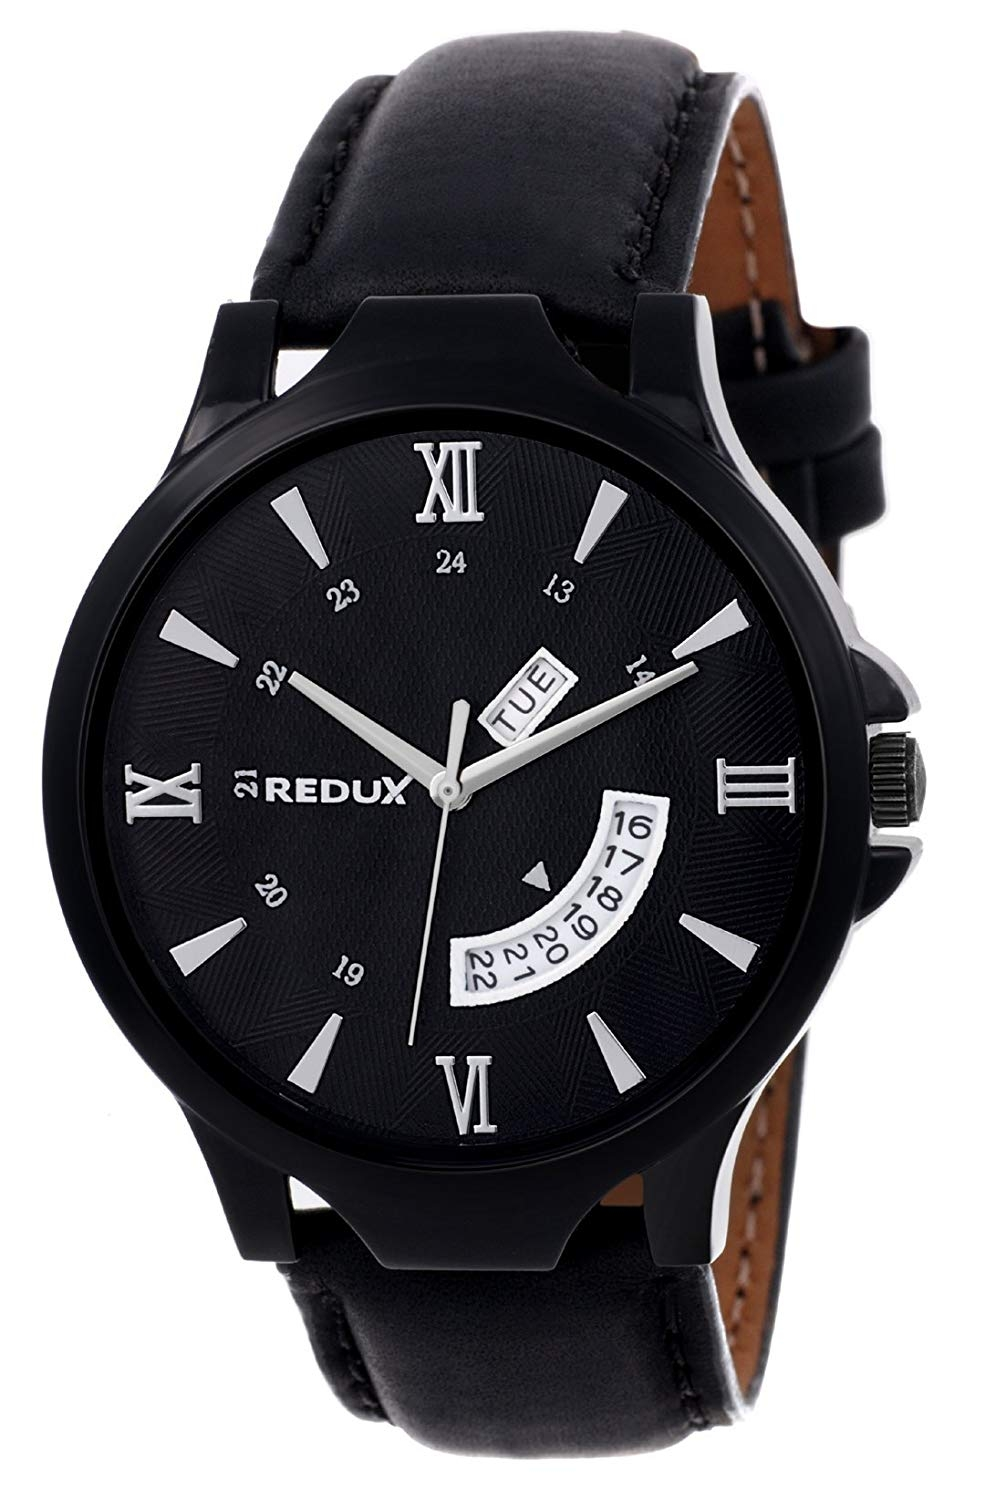 Redux Analogue Watch V106